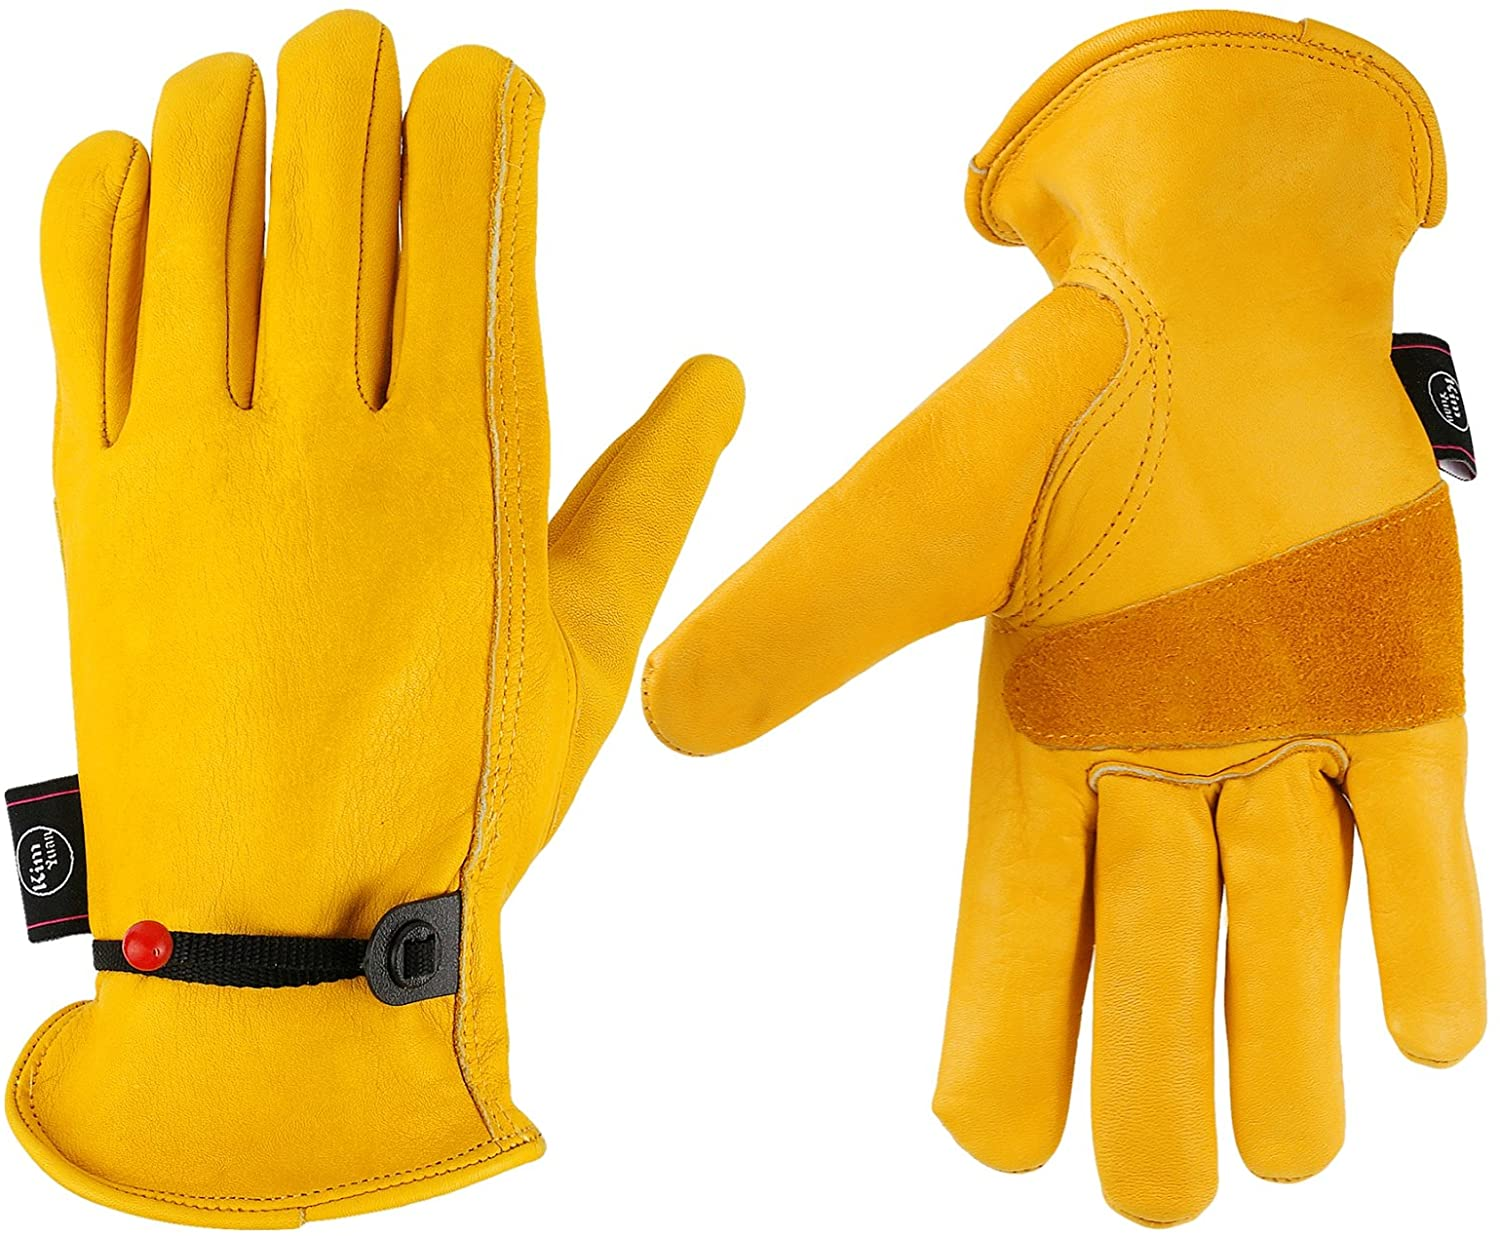 KIM YUAN Leather Work Gloves, with Adjustable Wrist, For Yard Work, Gardening, Farm, Warehouse, Construction, Motorcycle, Men & Women Large